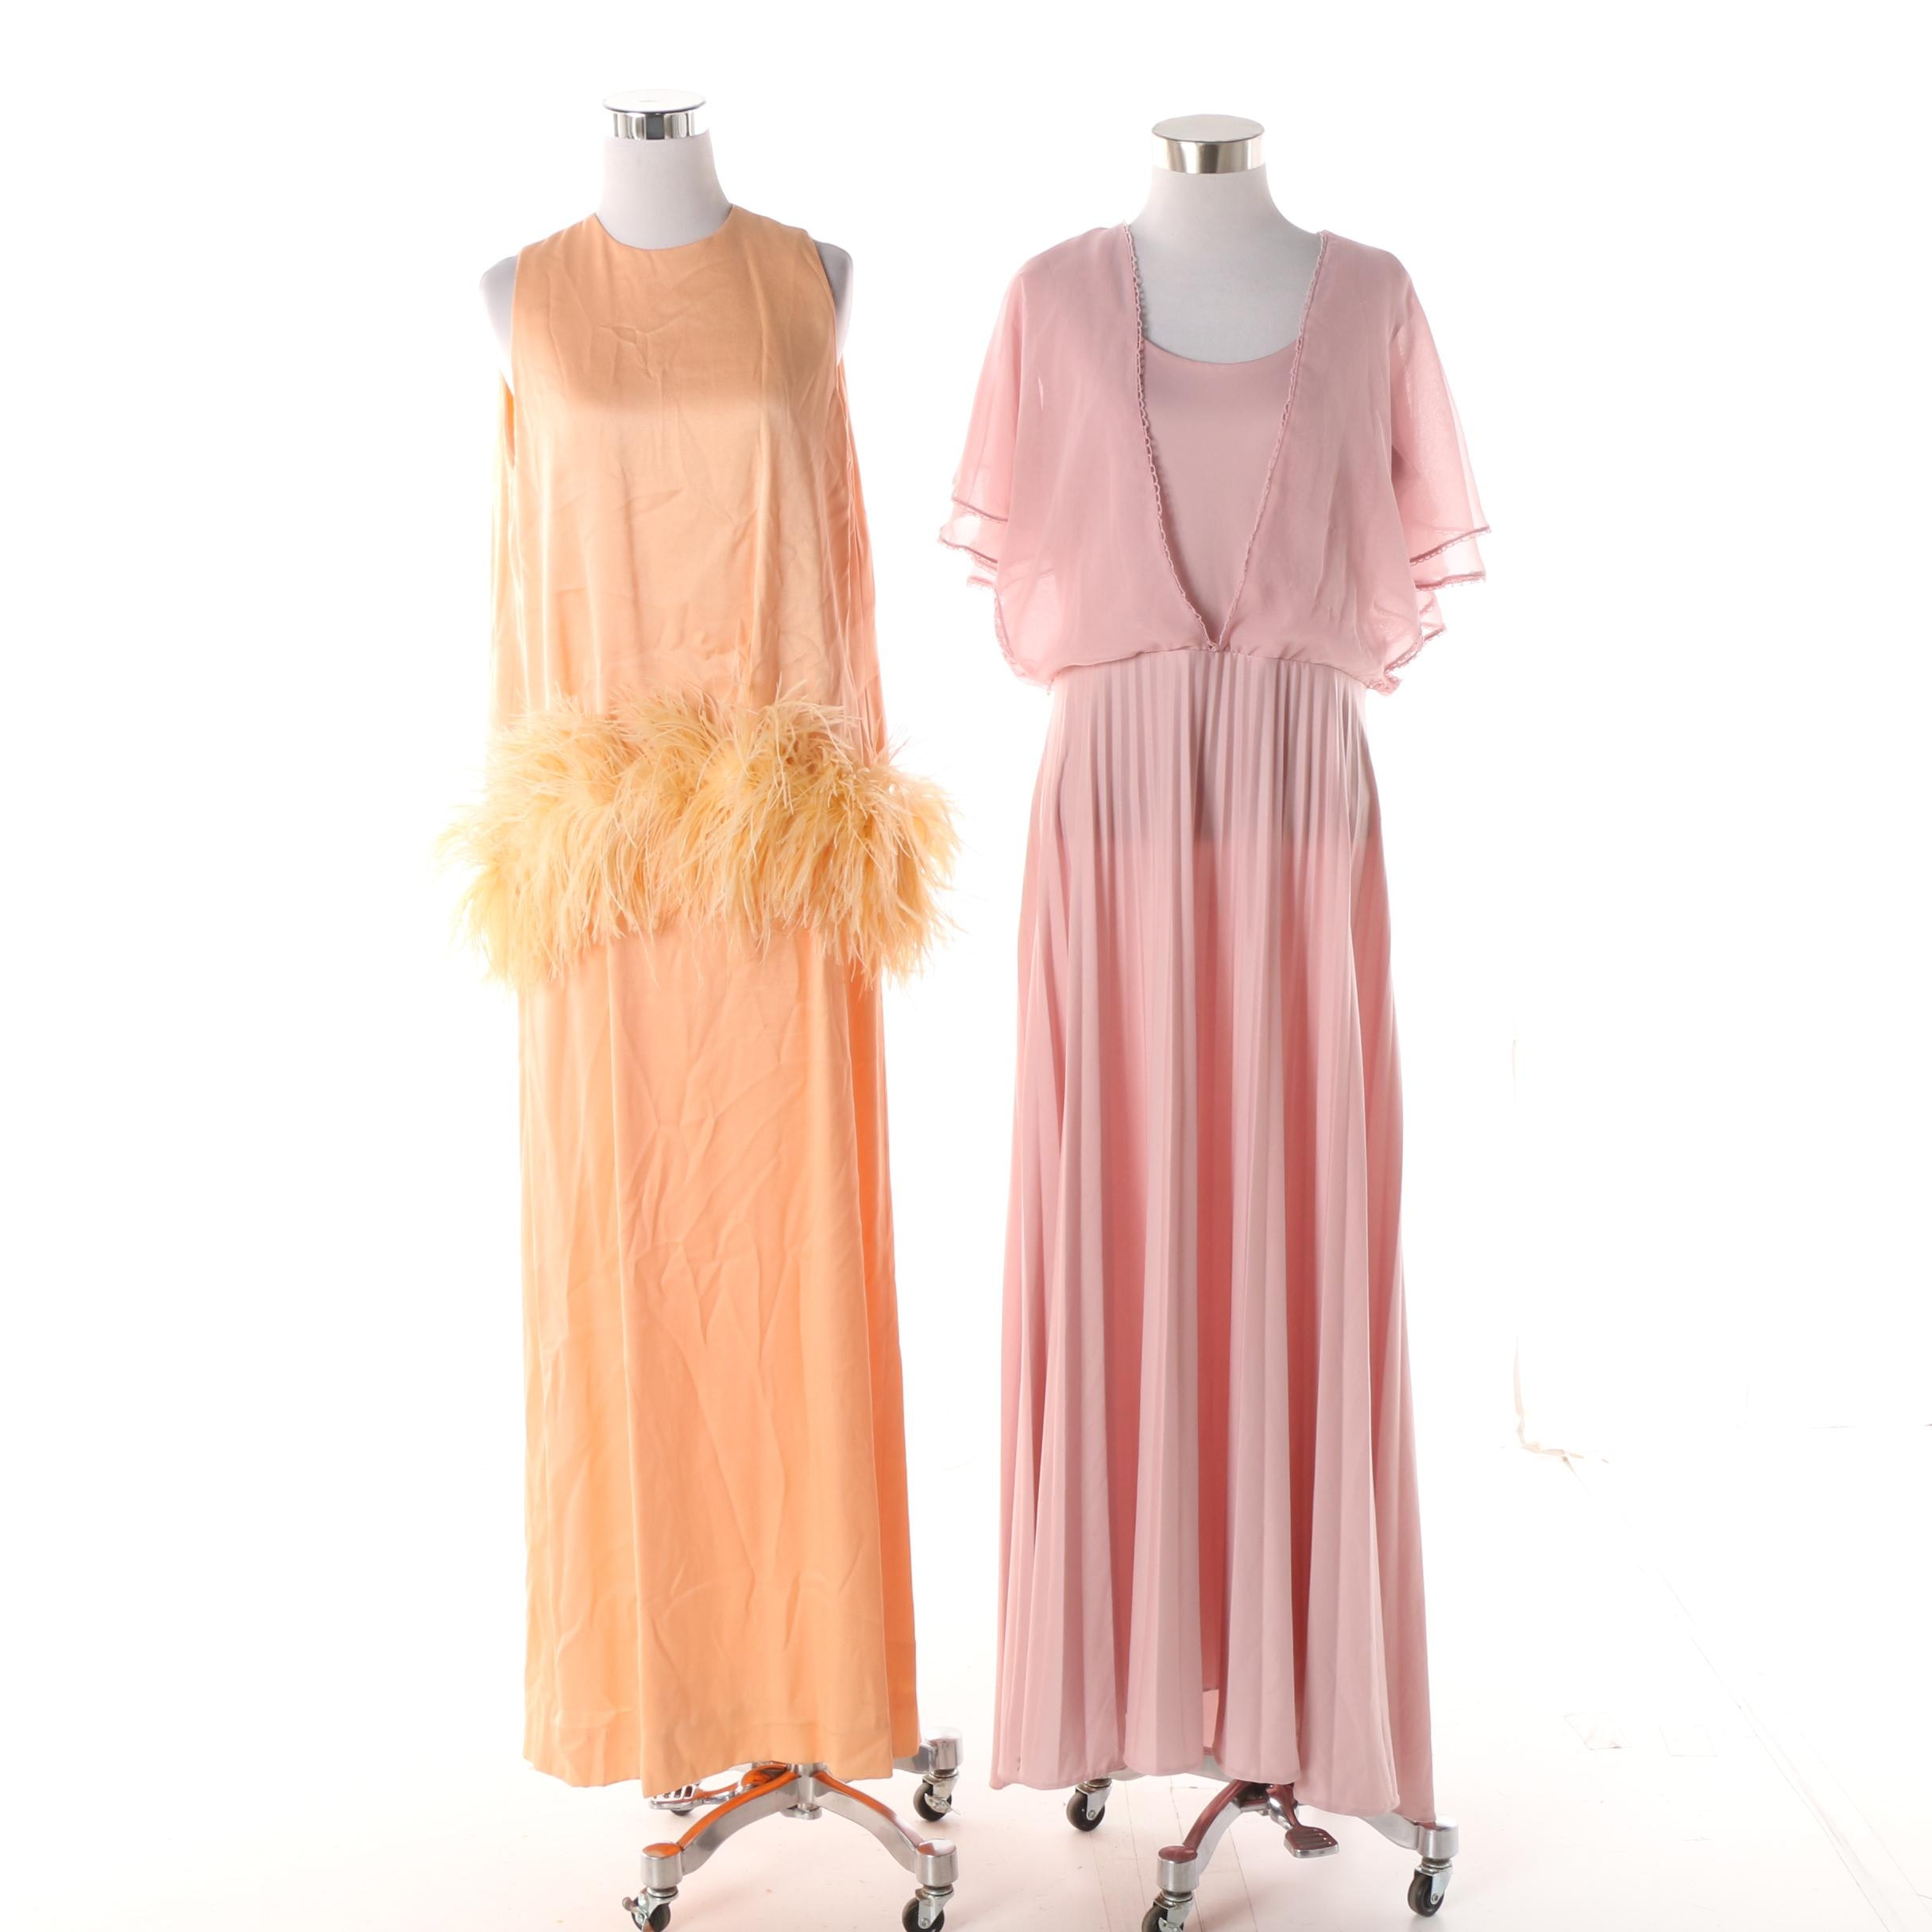 Women's Circa 1970s Vintage Evening Gowns including Acclaim by Seymour Levy